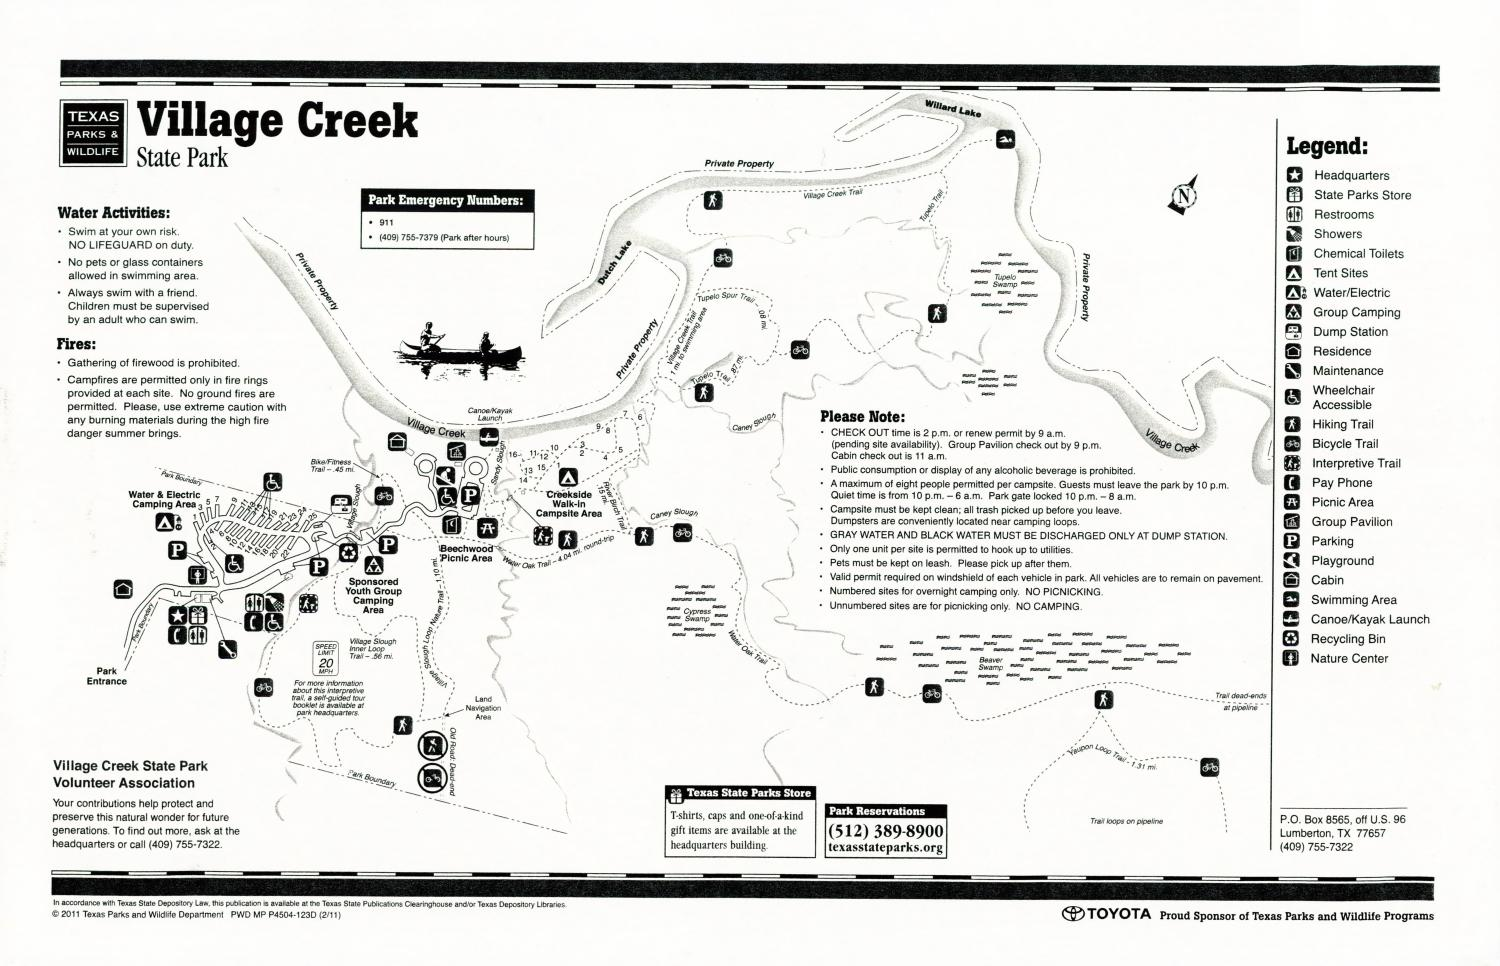 Village Creek State Park, Map of the Village Creek State Park outlining hiking trails and highlighting activities, facilities, and other features such as bathrooms, lodgings, water/electric, etc. It also contains general information for the park and for the Texas Parks and Wildlife Department. Additionally, there are various advertisements, including one with information about the Texas State Parks Pass.,